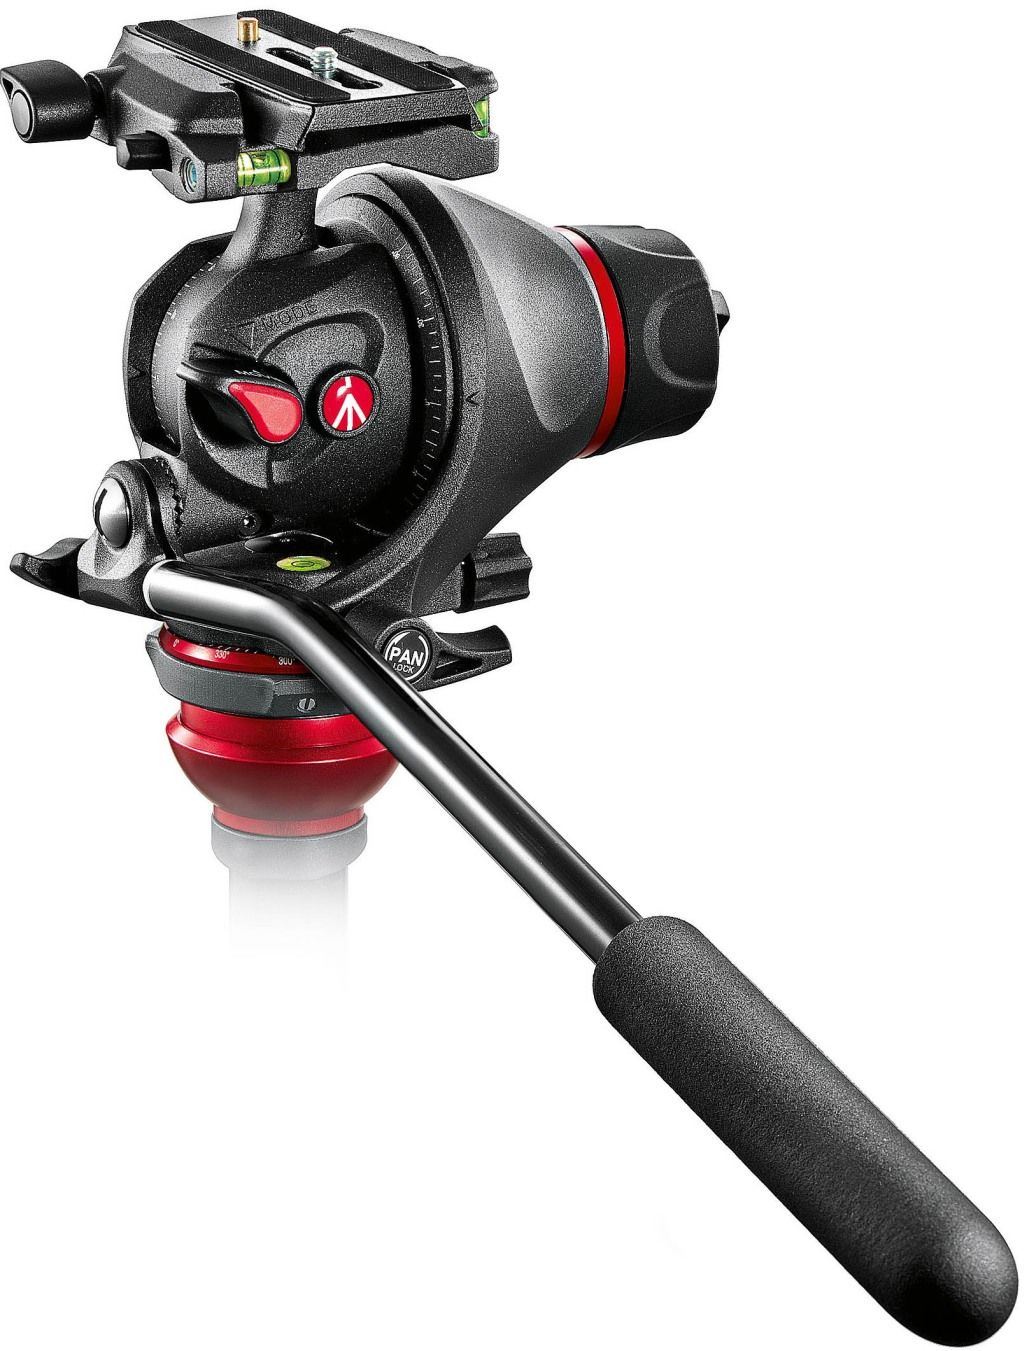 Manfrotto MH055M8-Q5 - głowica magnezowa PHOTO-MOVIE z Q5 (RC5) Manfrotto MH055M8-Q5 - głowica magnezowa PHOTO-MOVIE z Q5 (RC5)